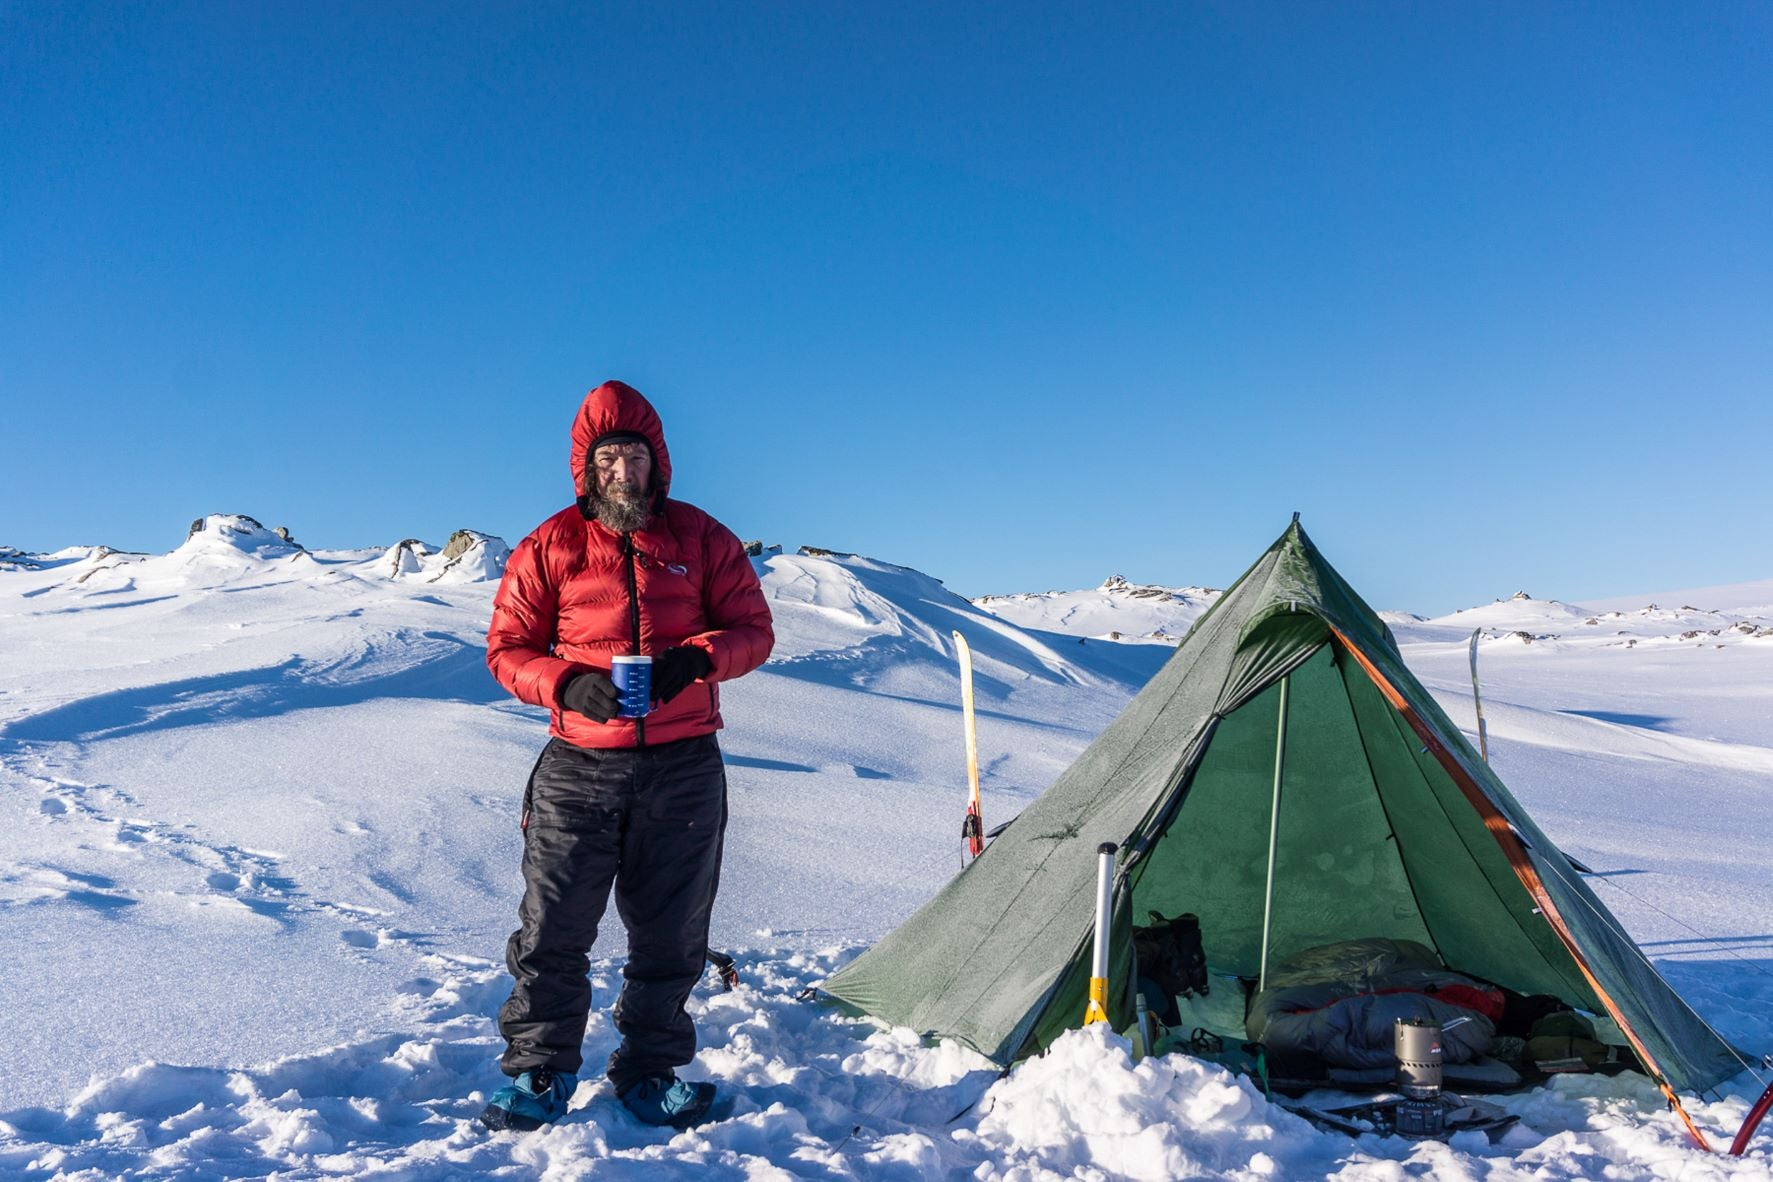 Townsend stands next to tent in snow